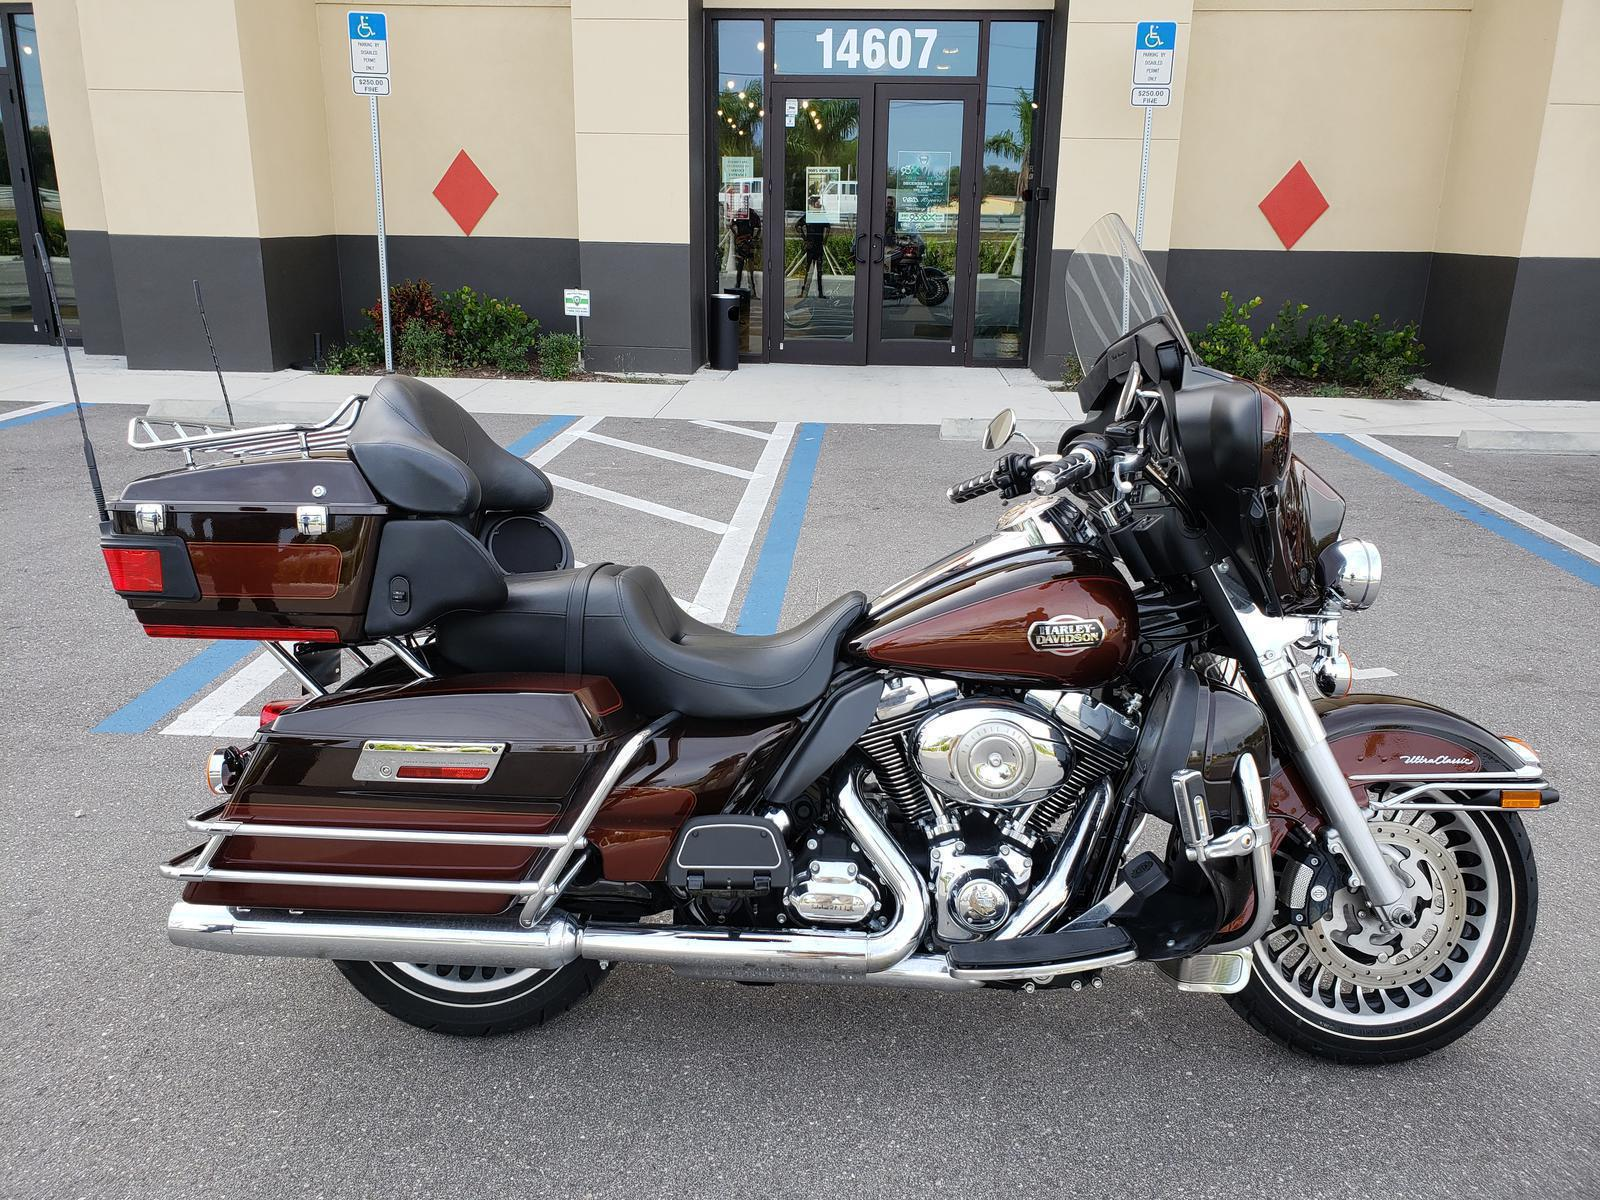 2011 Harley Davidson Electra Glide Ultra Classic For Sale In Fort Home Data Cable Wiring Together With Brake Cables And 20181214 093347